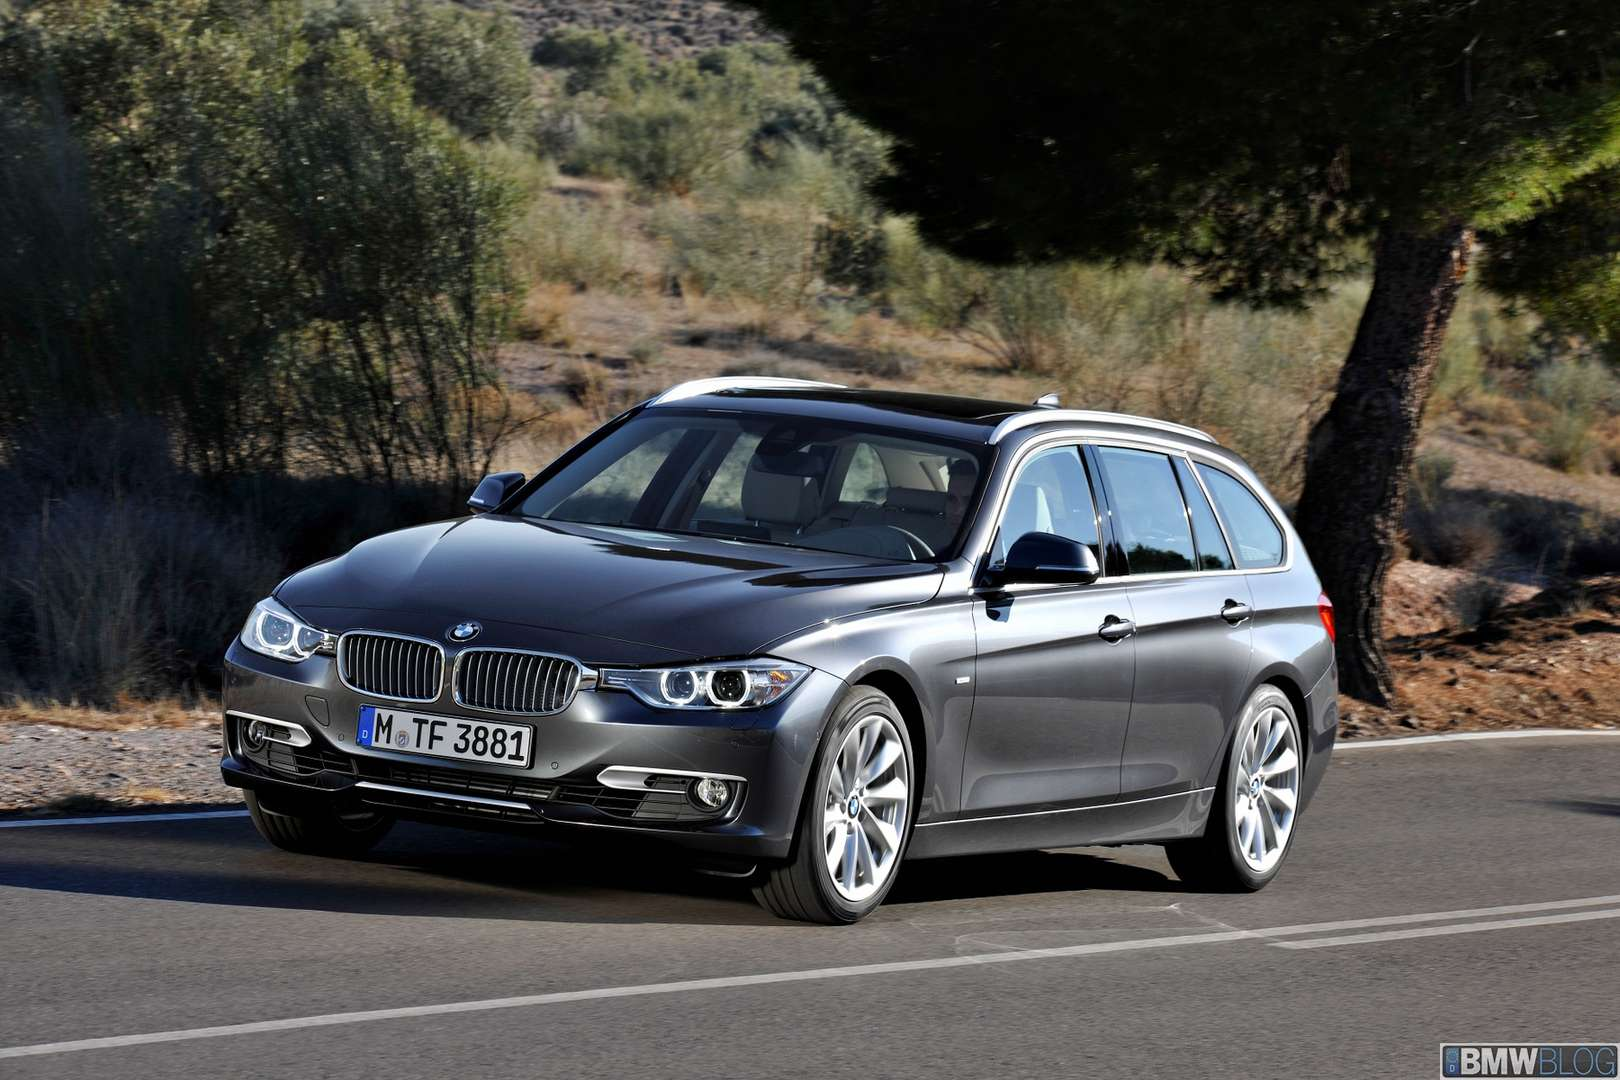 BMW 3-Series Touring #9622238